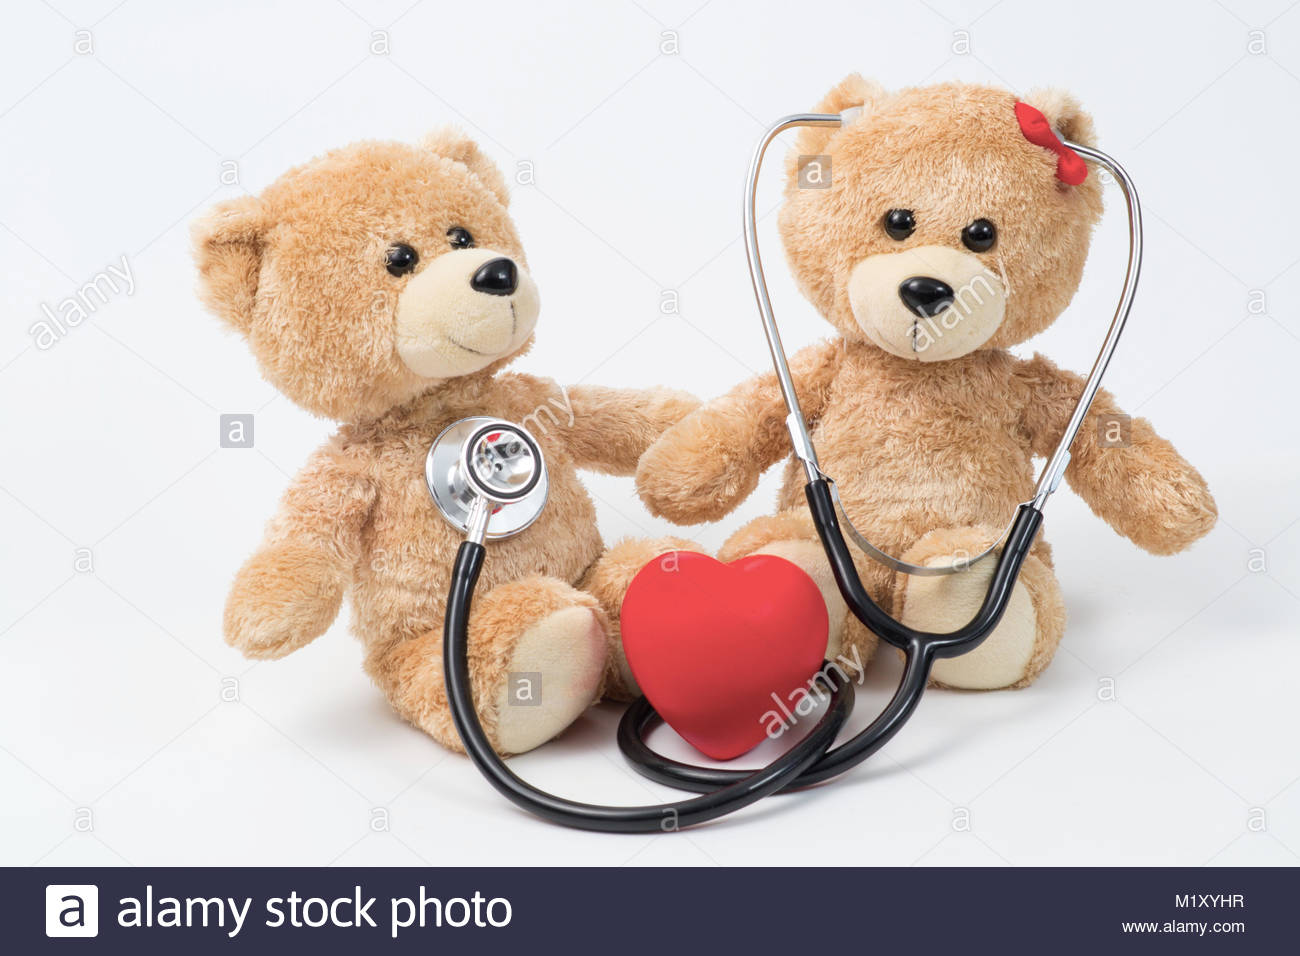 Close up Plush Teddy Bear with Stethoscope Device on Top of a Glass Table, Emphasizing Copy Space. - Stock Image